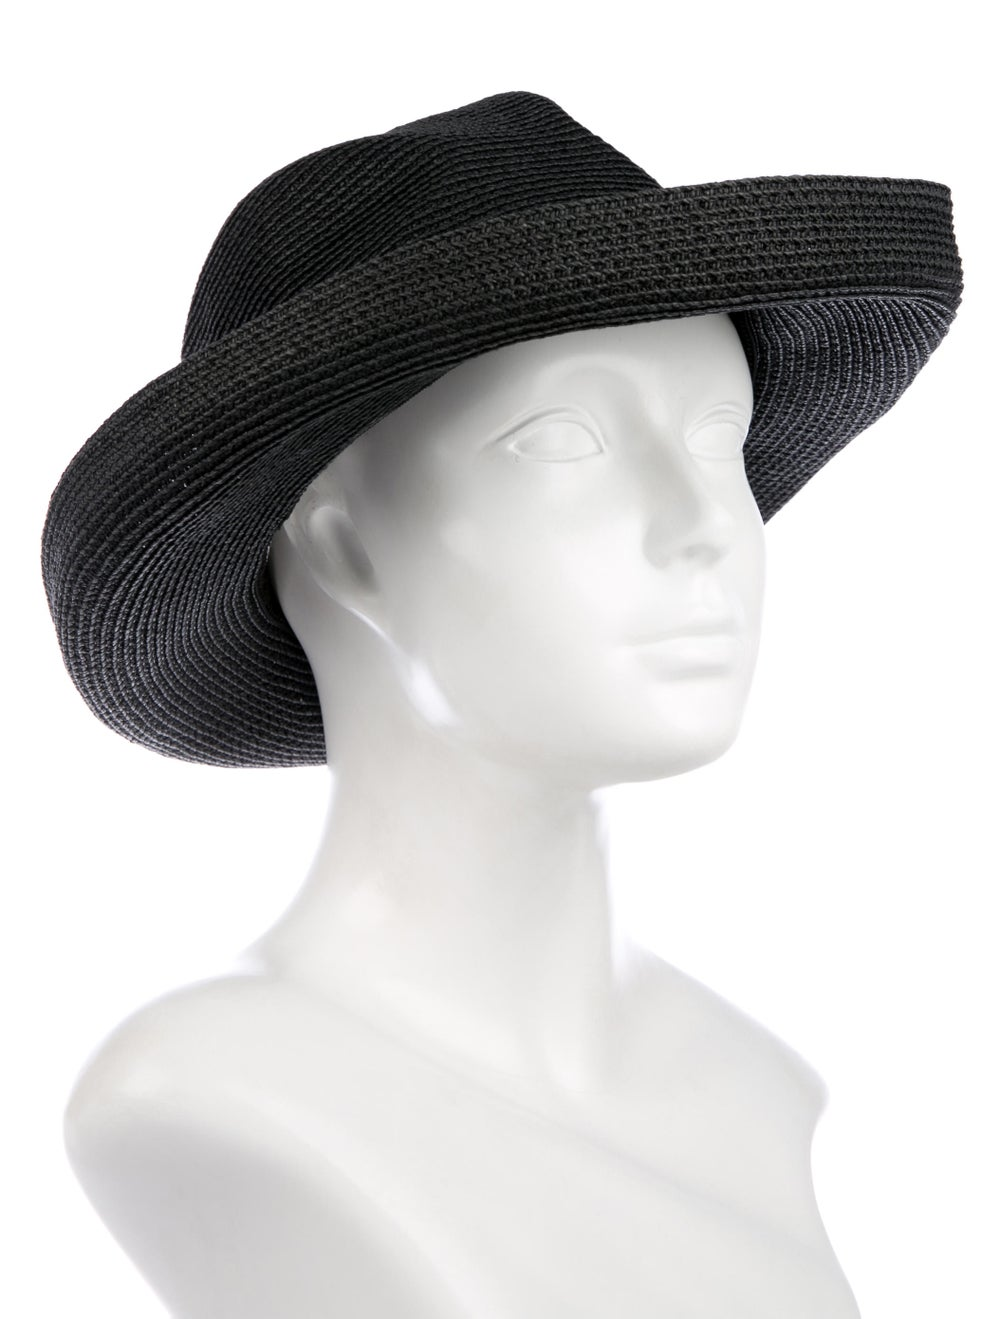 Eric Javits Straw Wide-Brim Hat Black - image 3